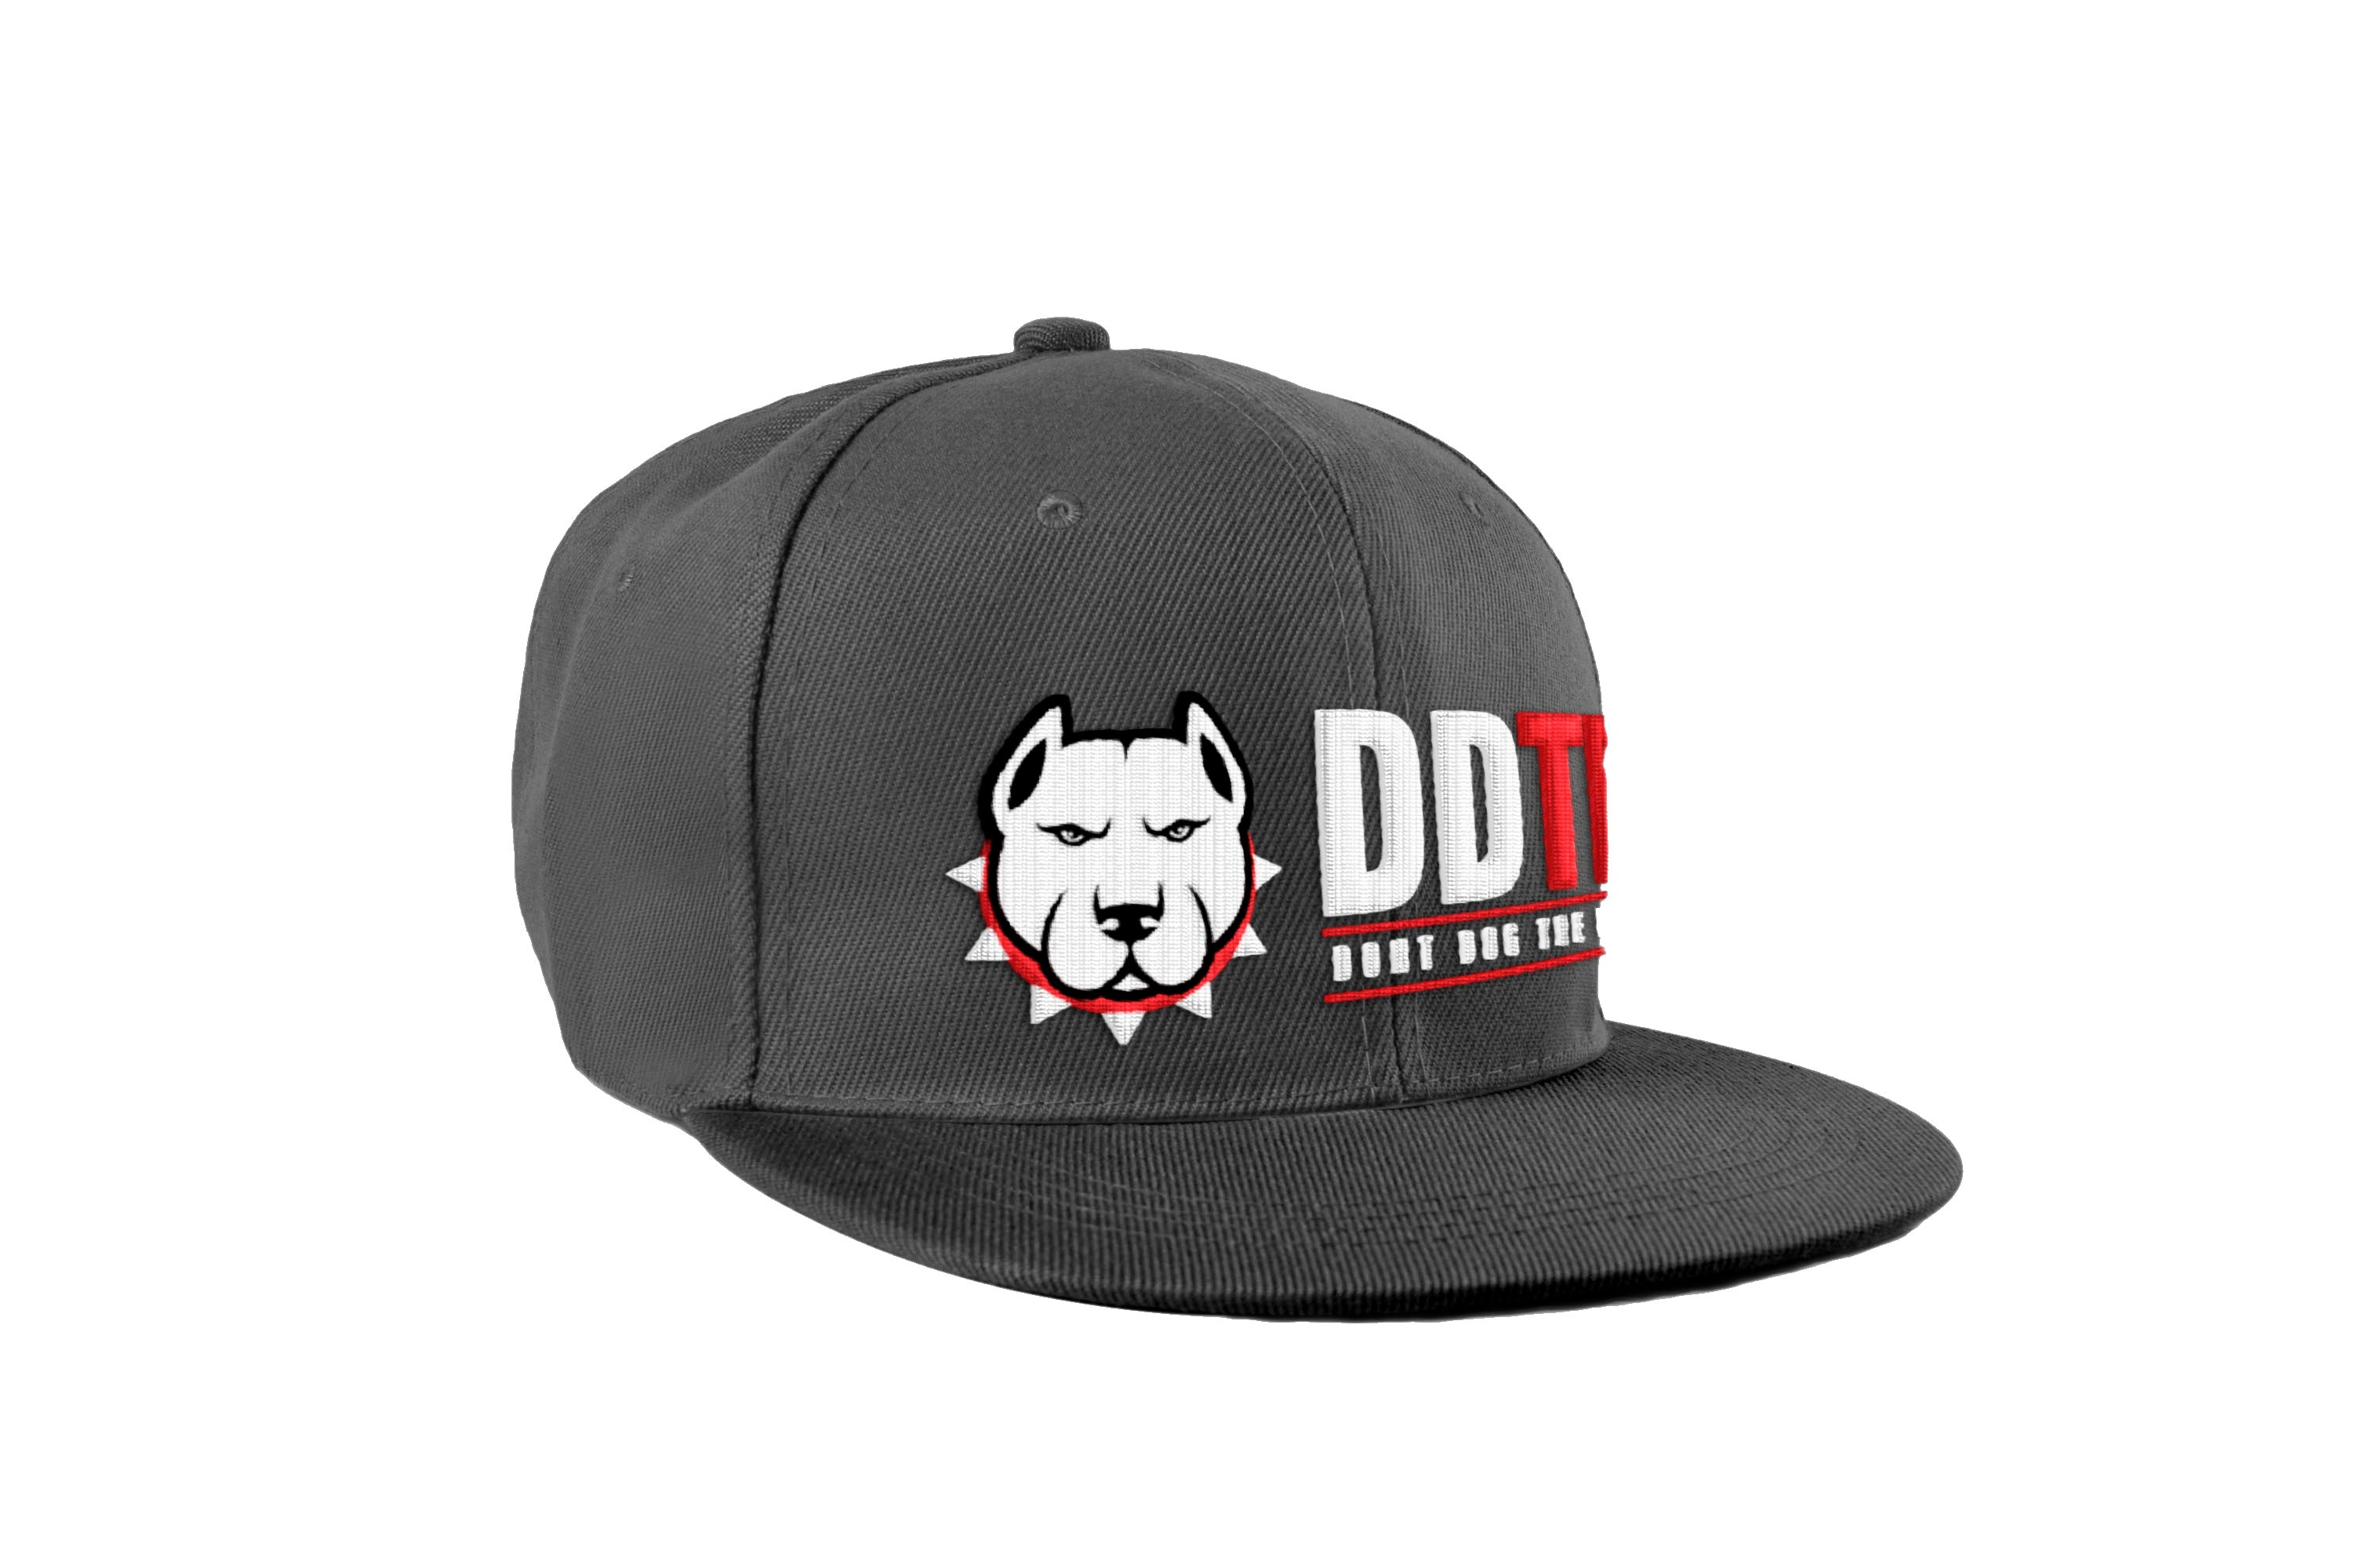 Black Dont Dog The Boys Snapback